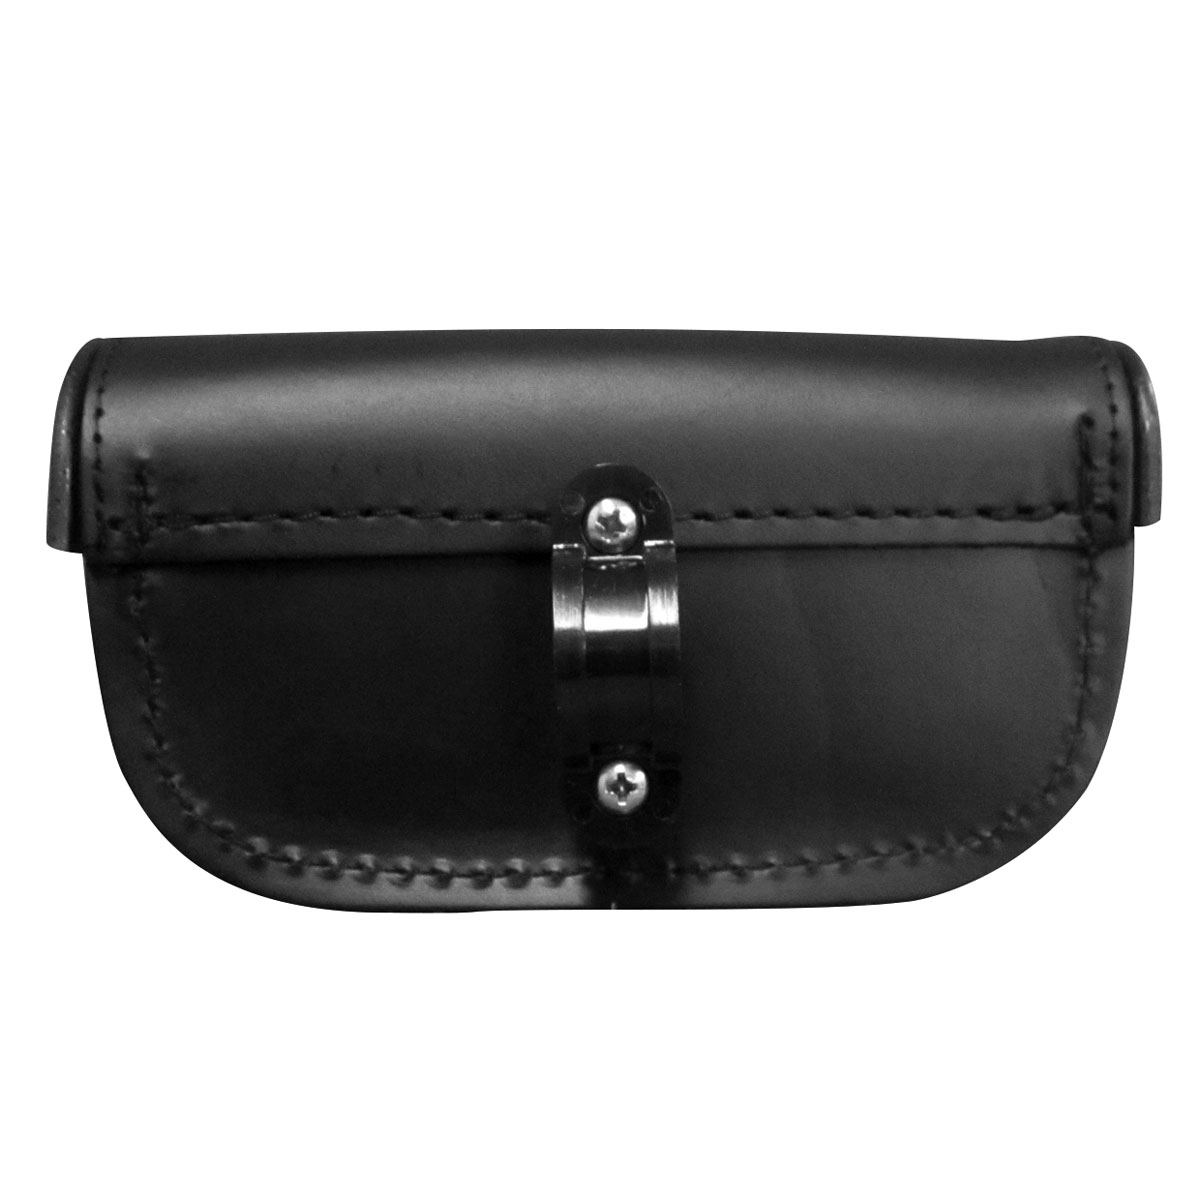 Leatherworks, Inc. Studded Handlebar Bag